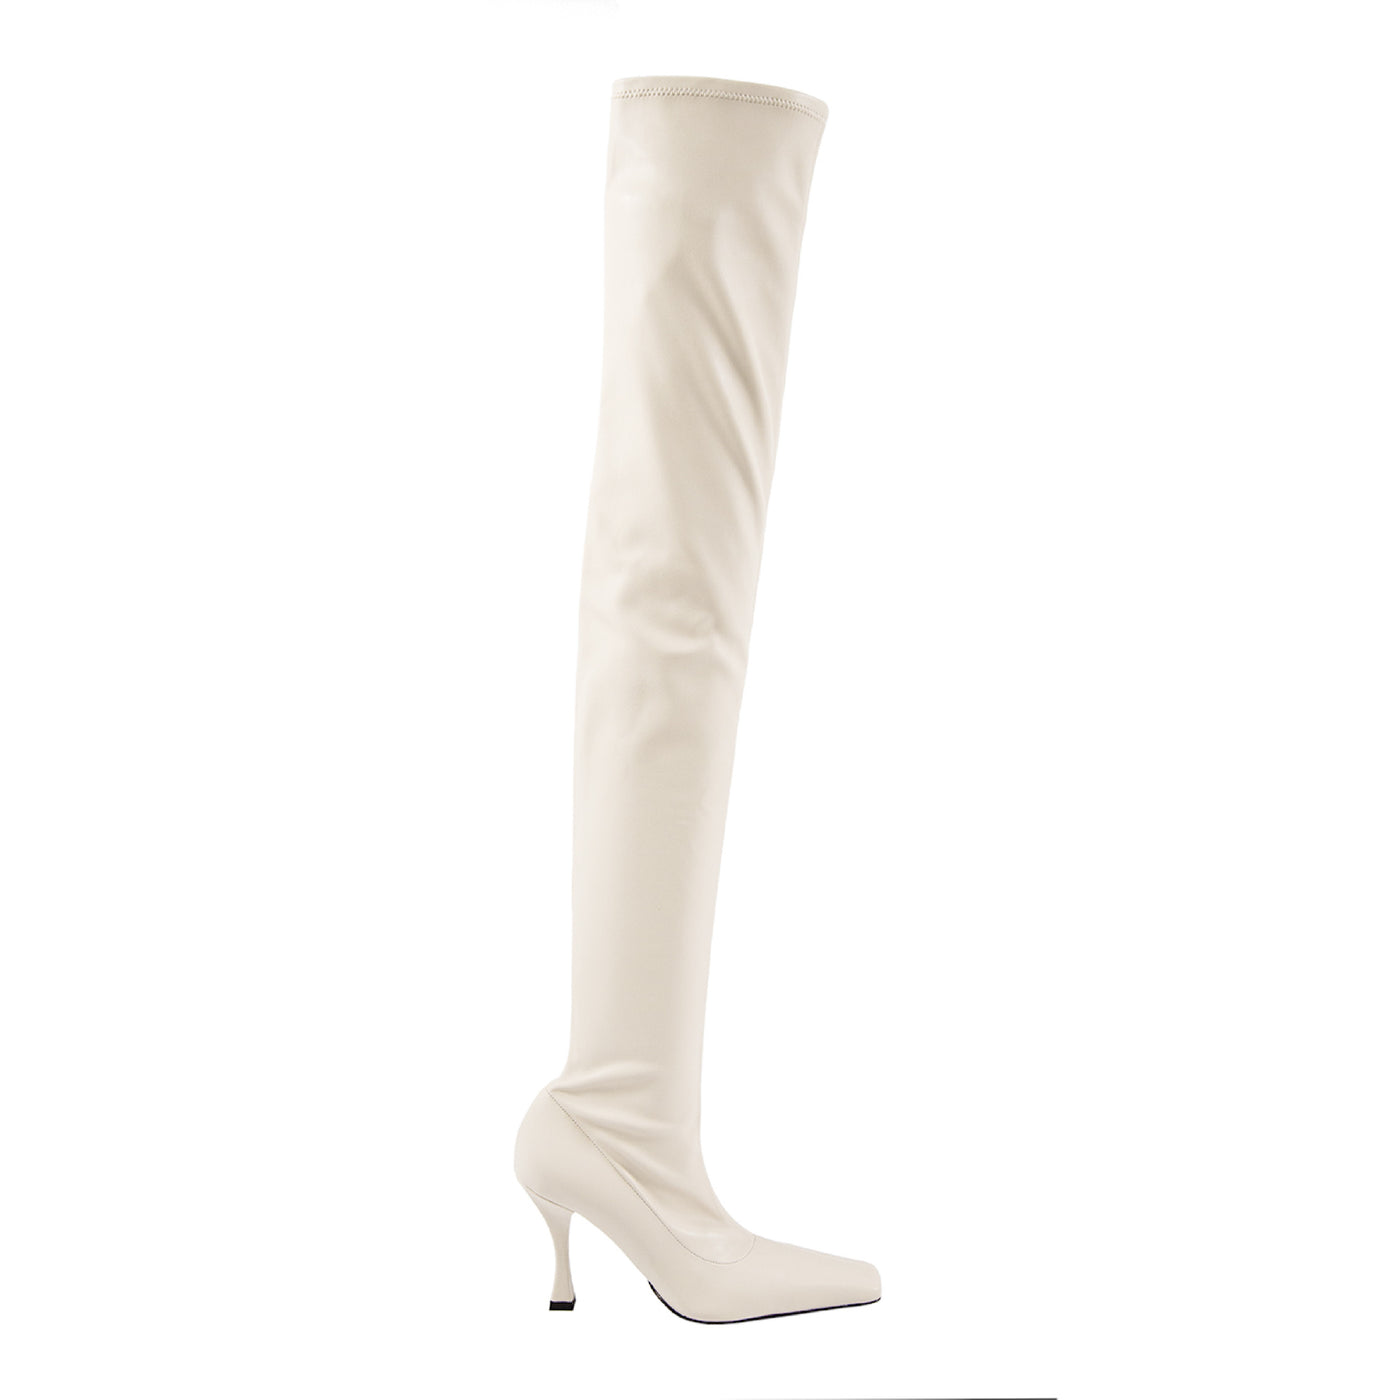 Load image into Gallery viewer, PROENZA SCHOULER STRETCH THIGH-HIGH BOOTS WHITE